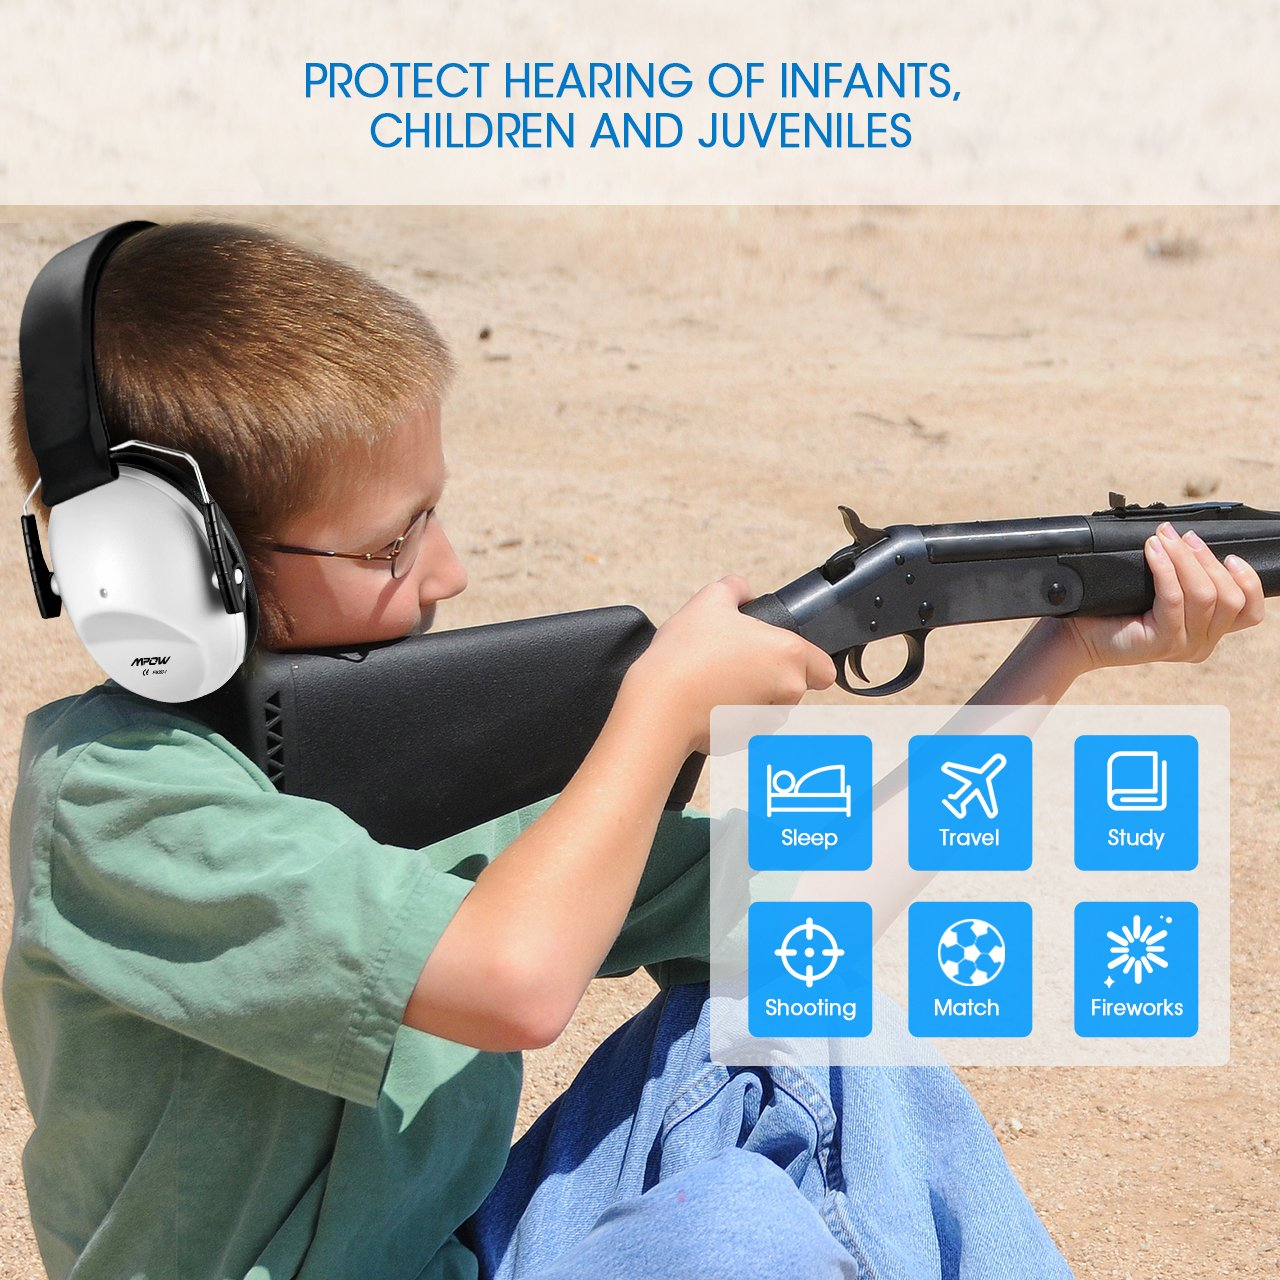 Mpow 068 Kids Ear Protection Safety Ear Muffs, NRR 25dB Noise Reduction Hearing Protection for Kids, Toddler Ear Protection for Shooting Range Hunting Season for Kids Toddlers Children (White) by Mpow (Image #4)